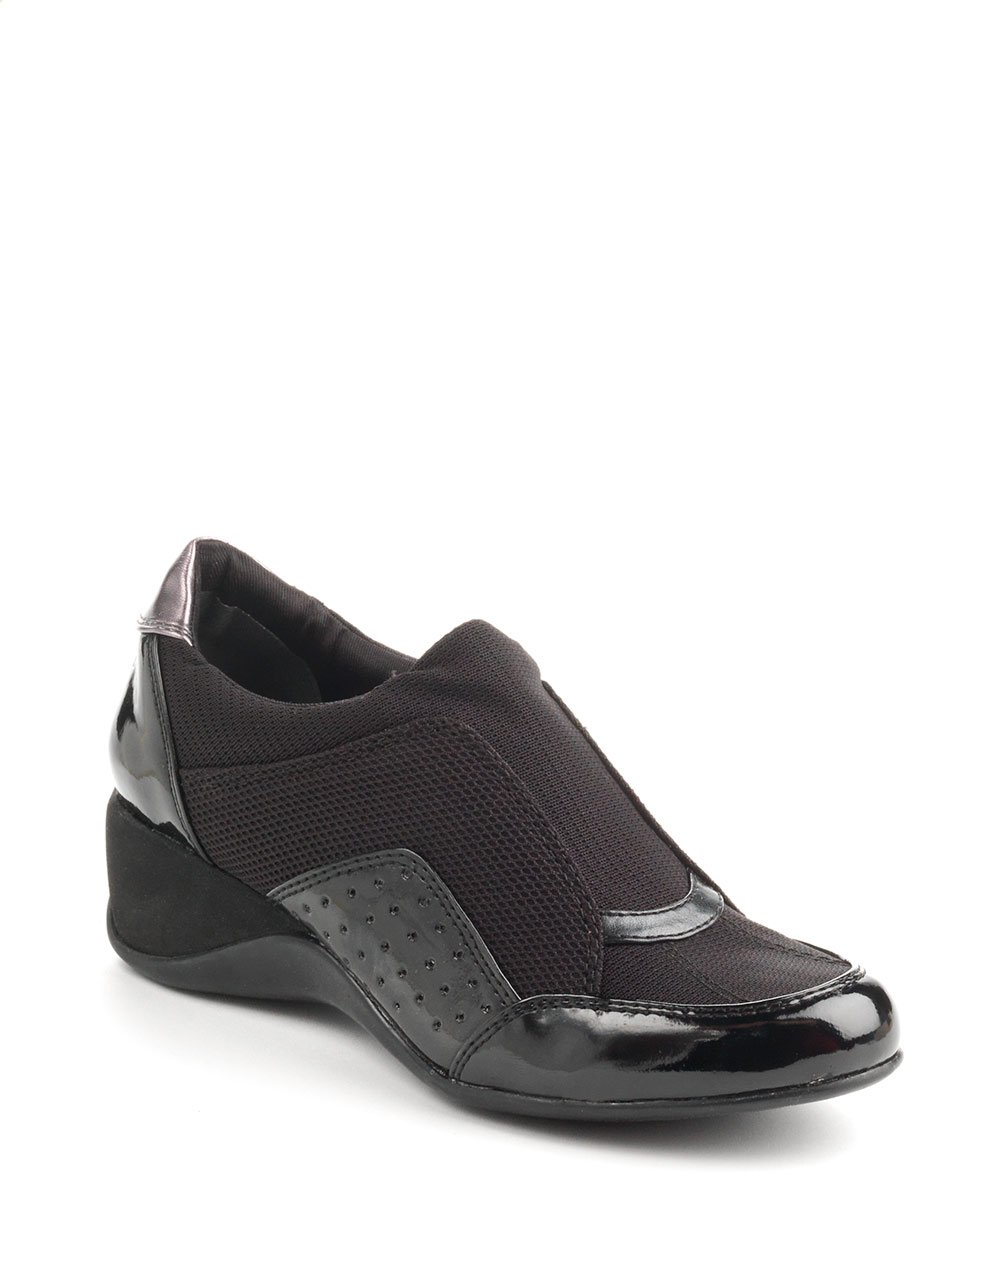 Dkny Pacific Shoes In Black Lyst